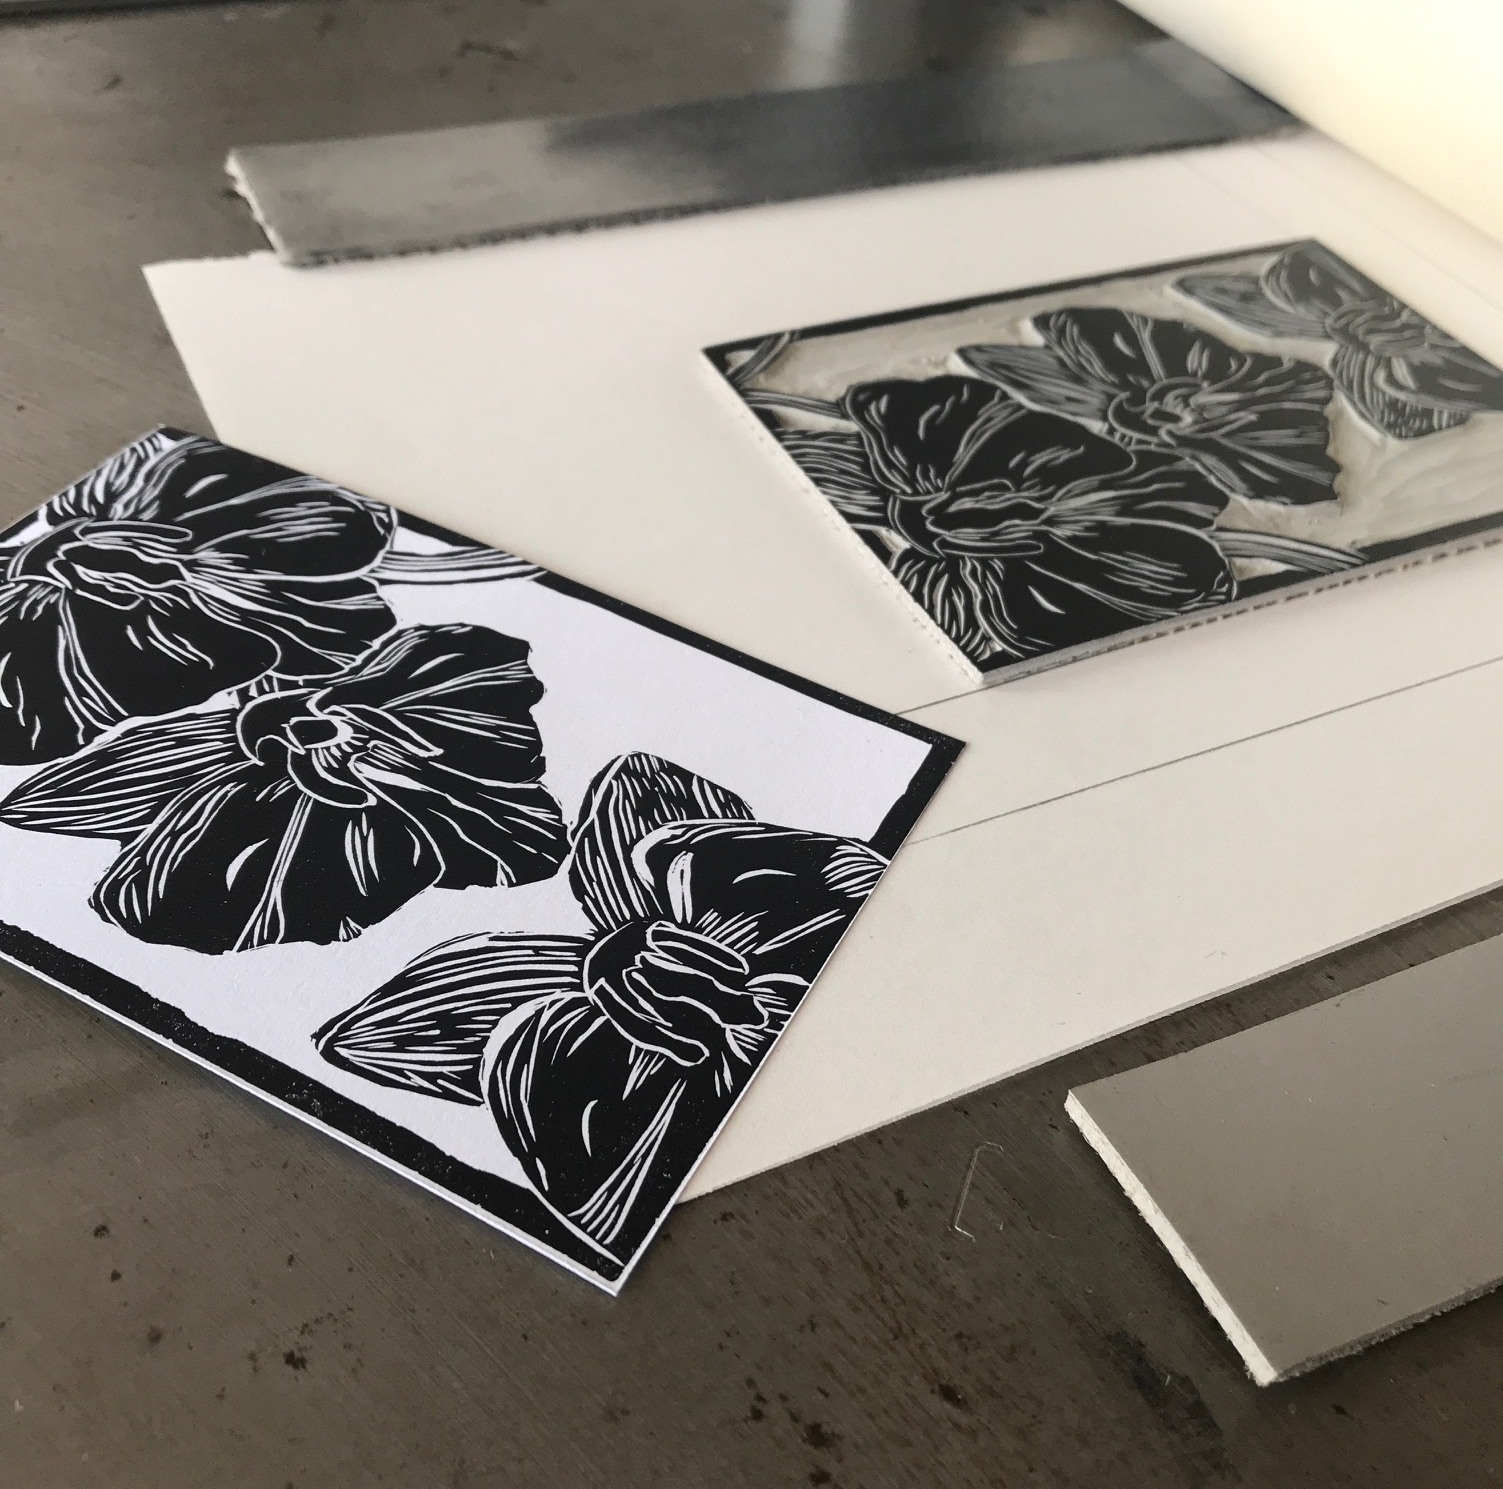 Samira Gdisis - Studio 2555 - 2nd FloorPrintmaking and Mixed MediaPrints and other artwork inspired by people, life experiences and pretty clothes.Instagram: @samira_gdisis